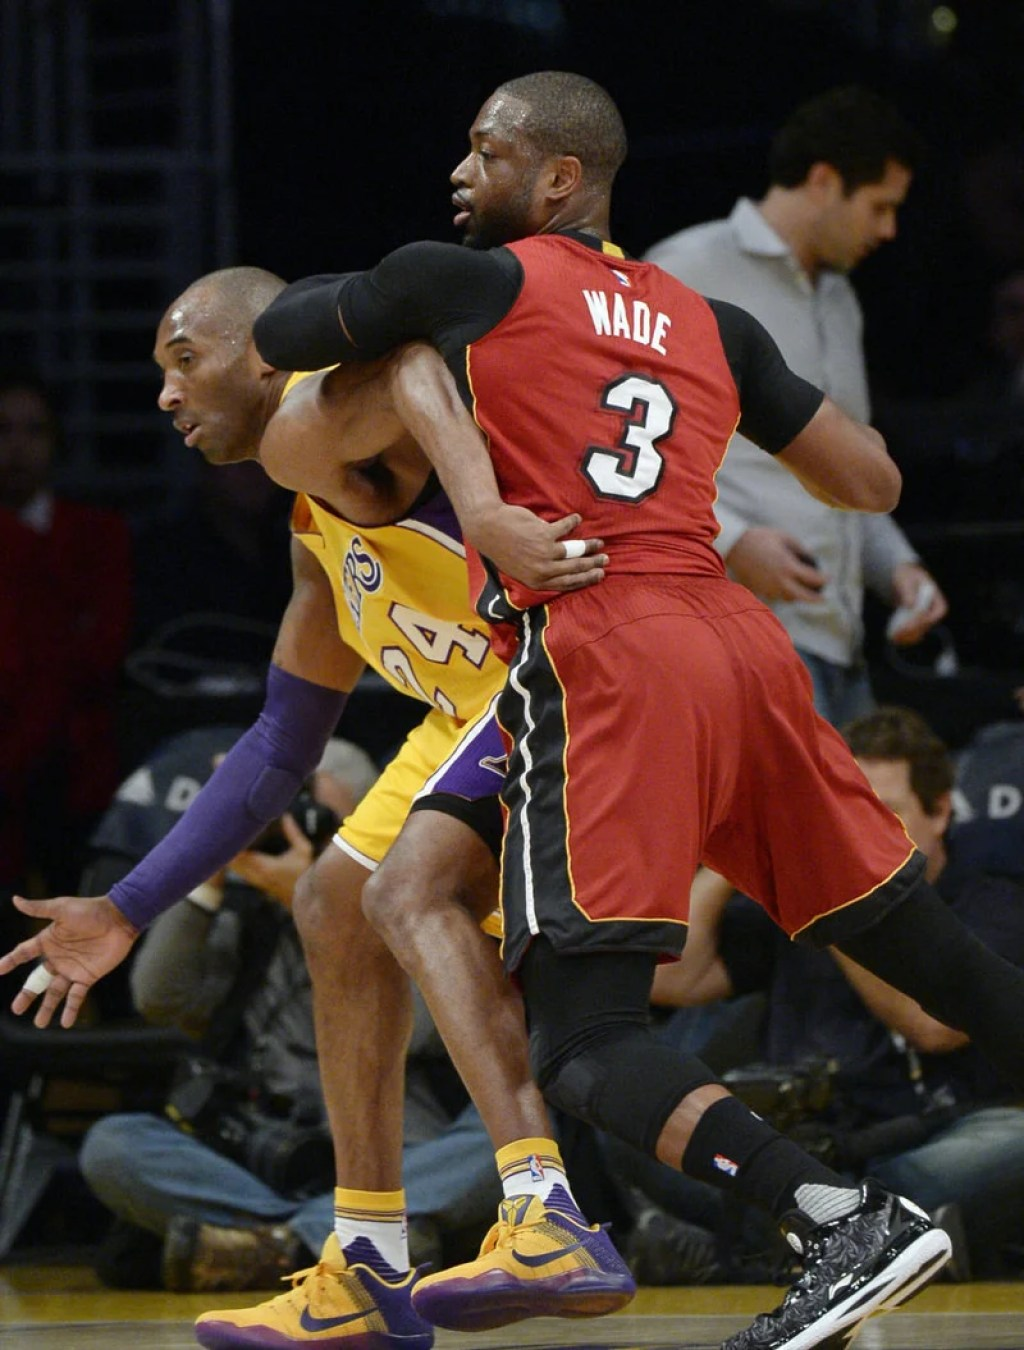 Kobe Bryant and Dwyane Wade in the Nike Kobe 11 and the Li-Ning Way of Wade 4, respectively